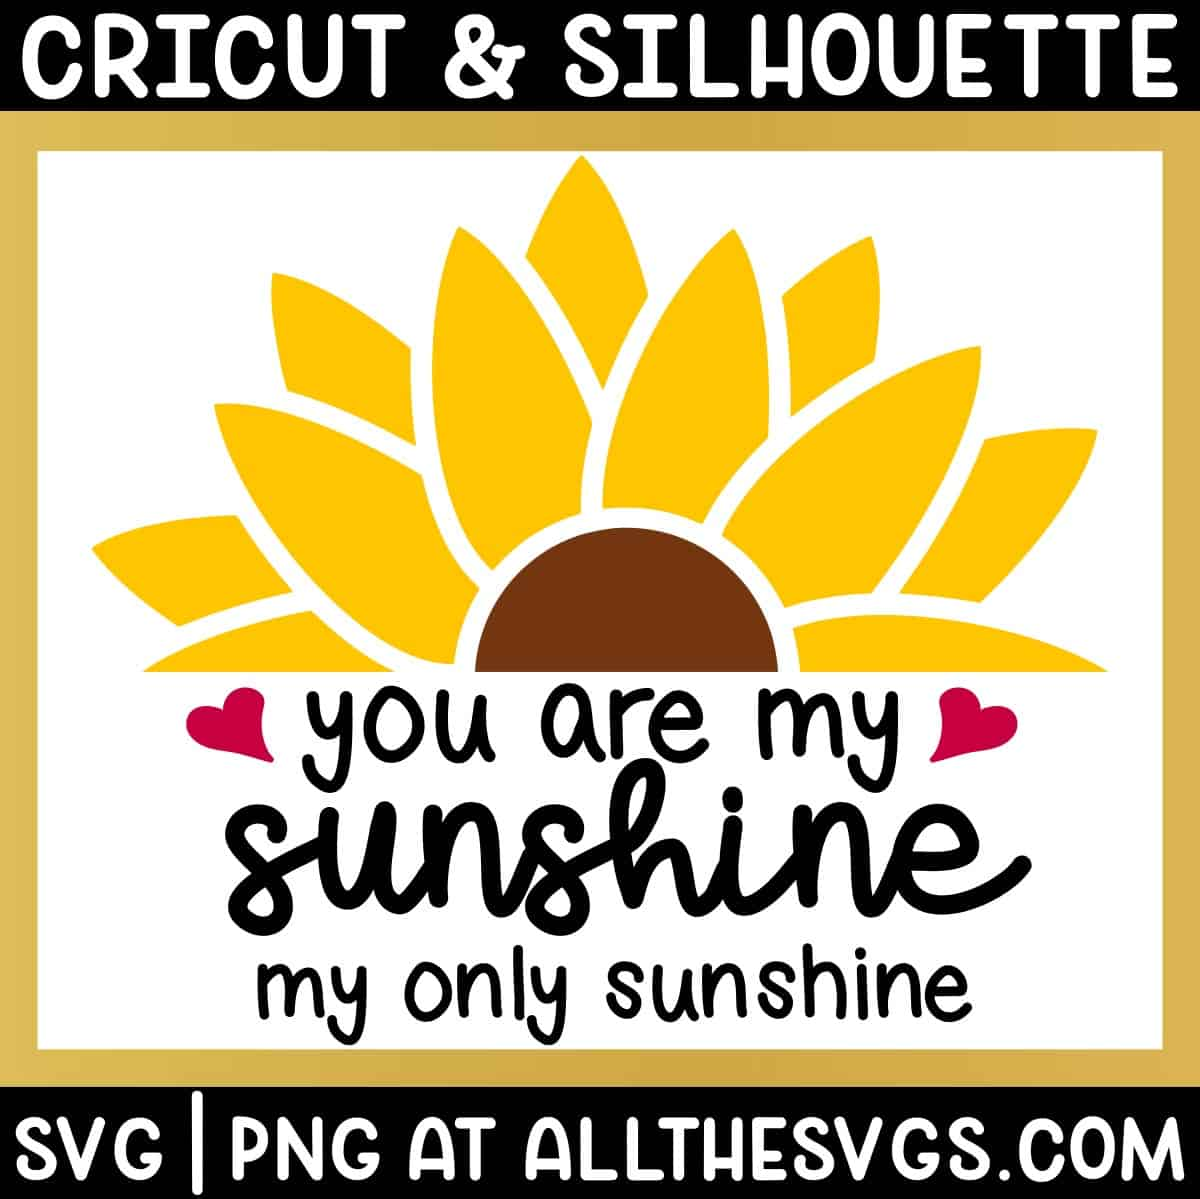 free you are my sunshine quote svg png with half sunflower on top like sun on horizon.